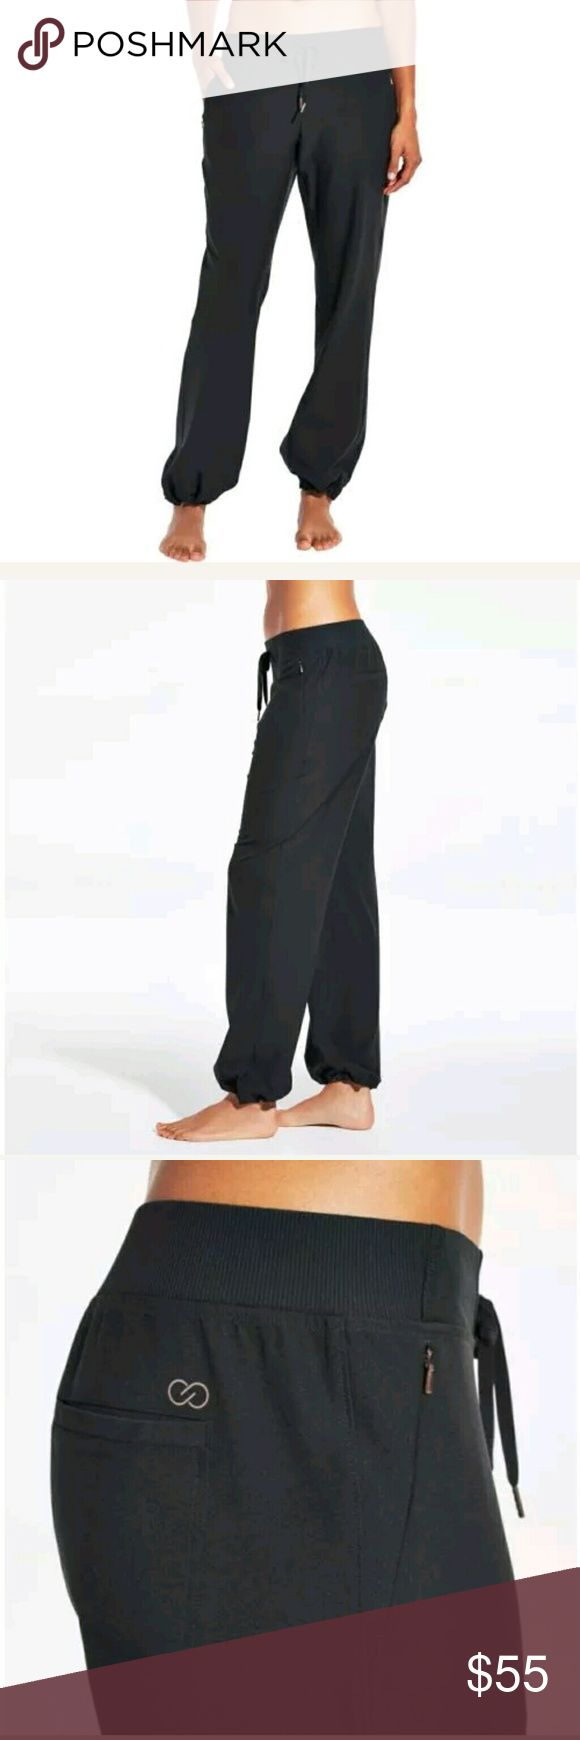 NWT Calia anywhere woven wide leg trouser NWT Calia by Carrie Underwood anywhere woven wide leg trouser in caviar.  Loose fit,  wide leg.  Size large. CALIA by Carrie Underwood Pants Track Pants & Joggers